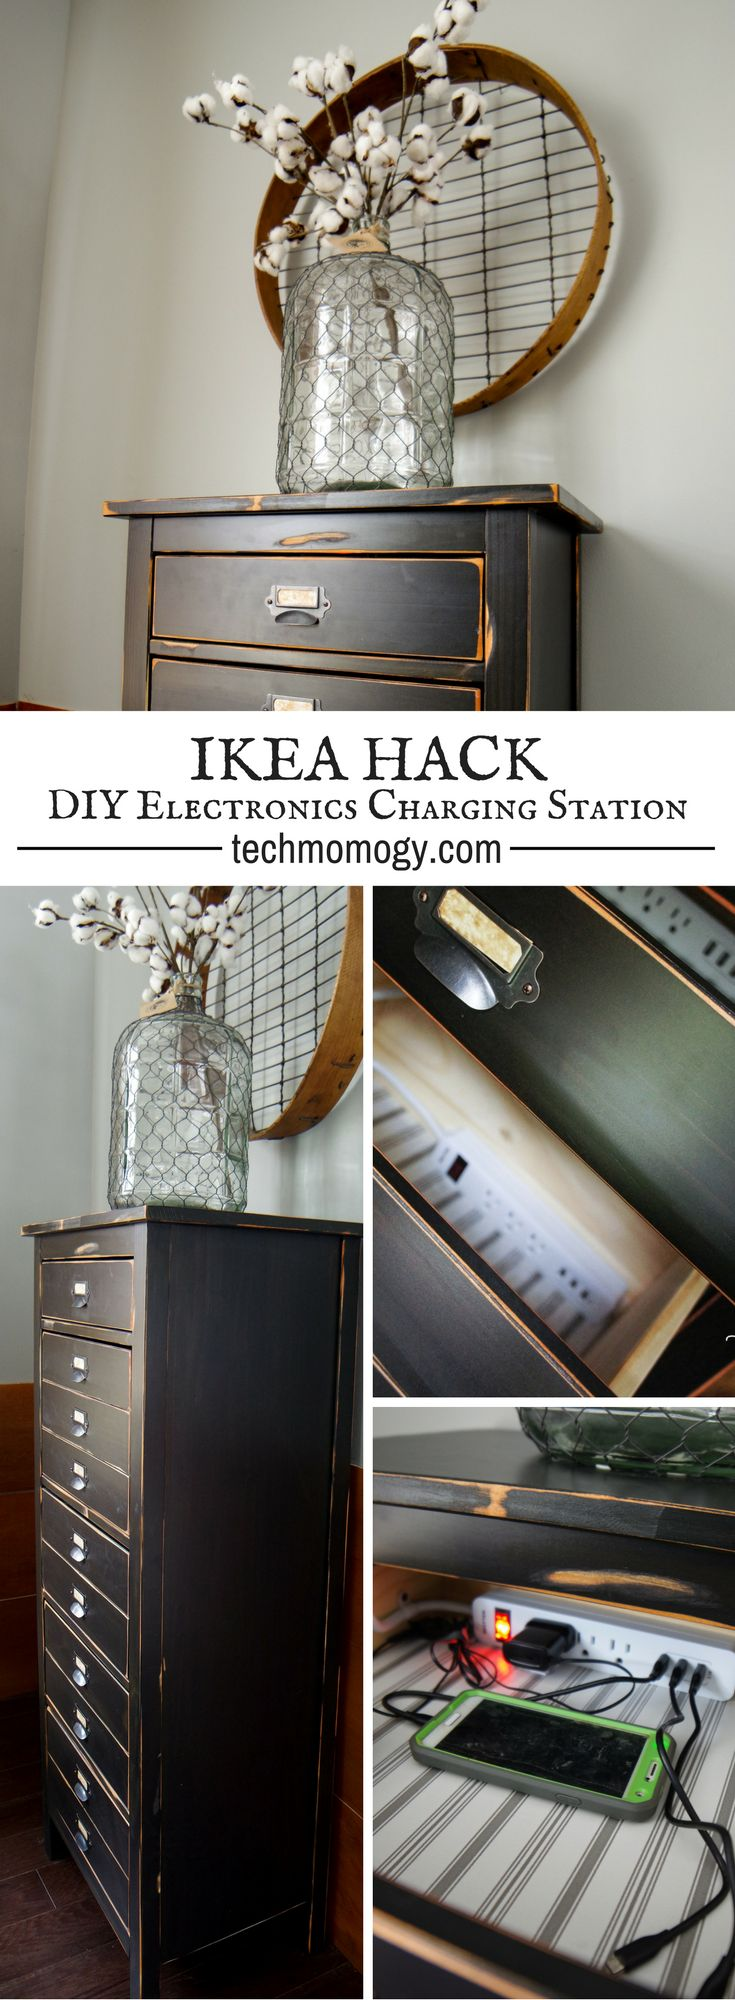 IKEA Hack: DIY Electronics Charging Cabinet from a 5 drawer Hemnes dresser | Techmomogy.com - If you like Ikea's Hemnes line of furniture, Ikea Hacks, distressed vintage-looking home decor, and the idea of organized electronics, you will LOVE my DIY Electronics Charging Cabinet!